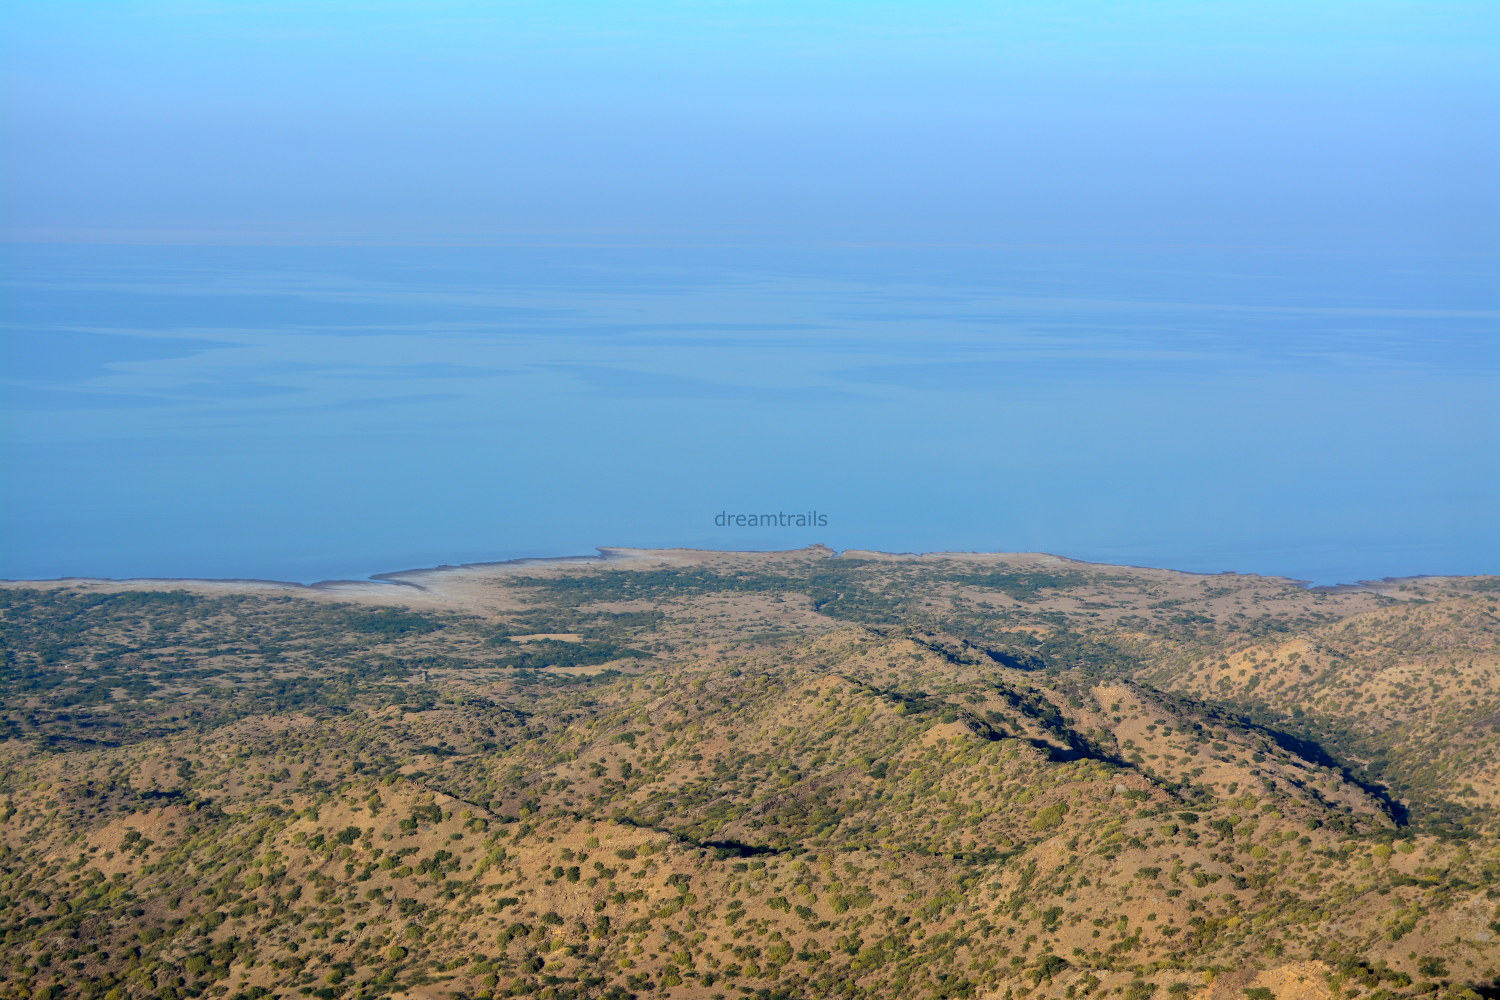 View of Rann of Kutch from Kalo Dungar